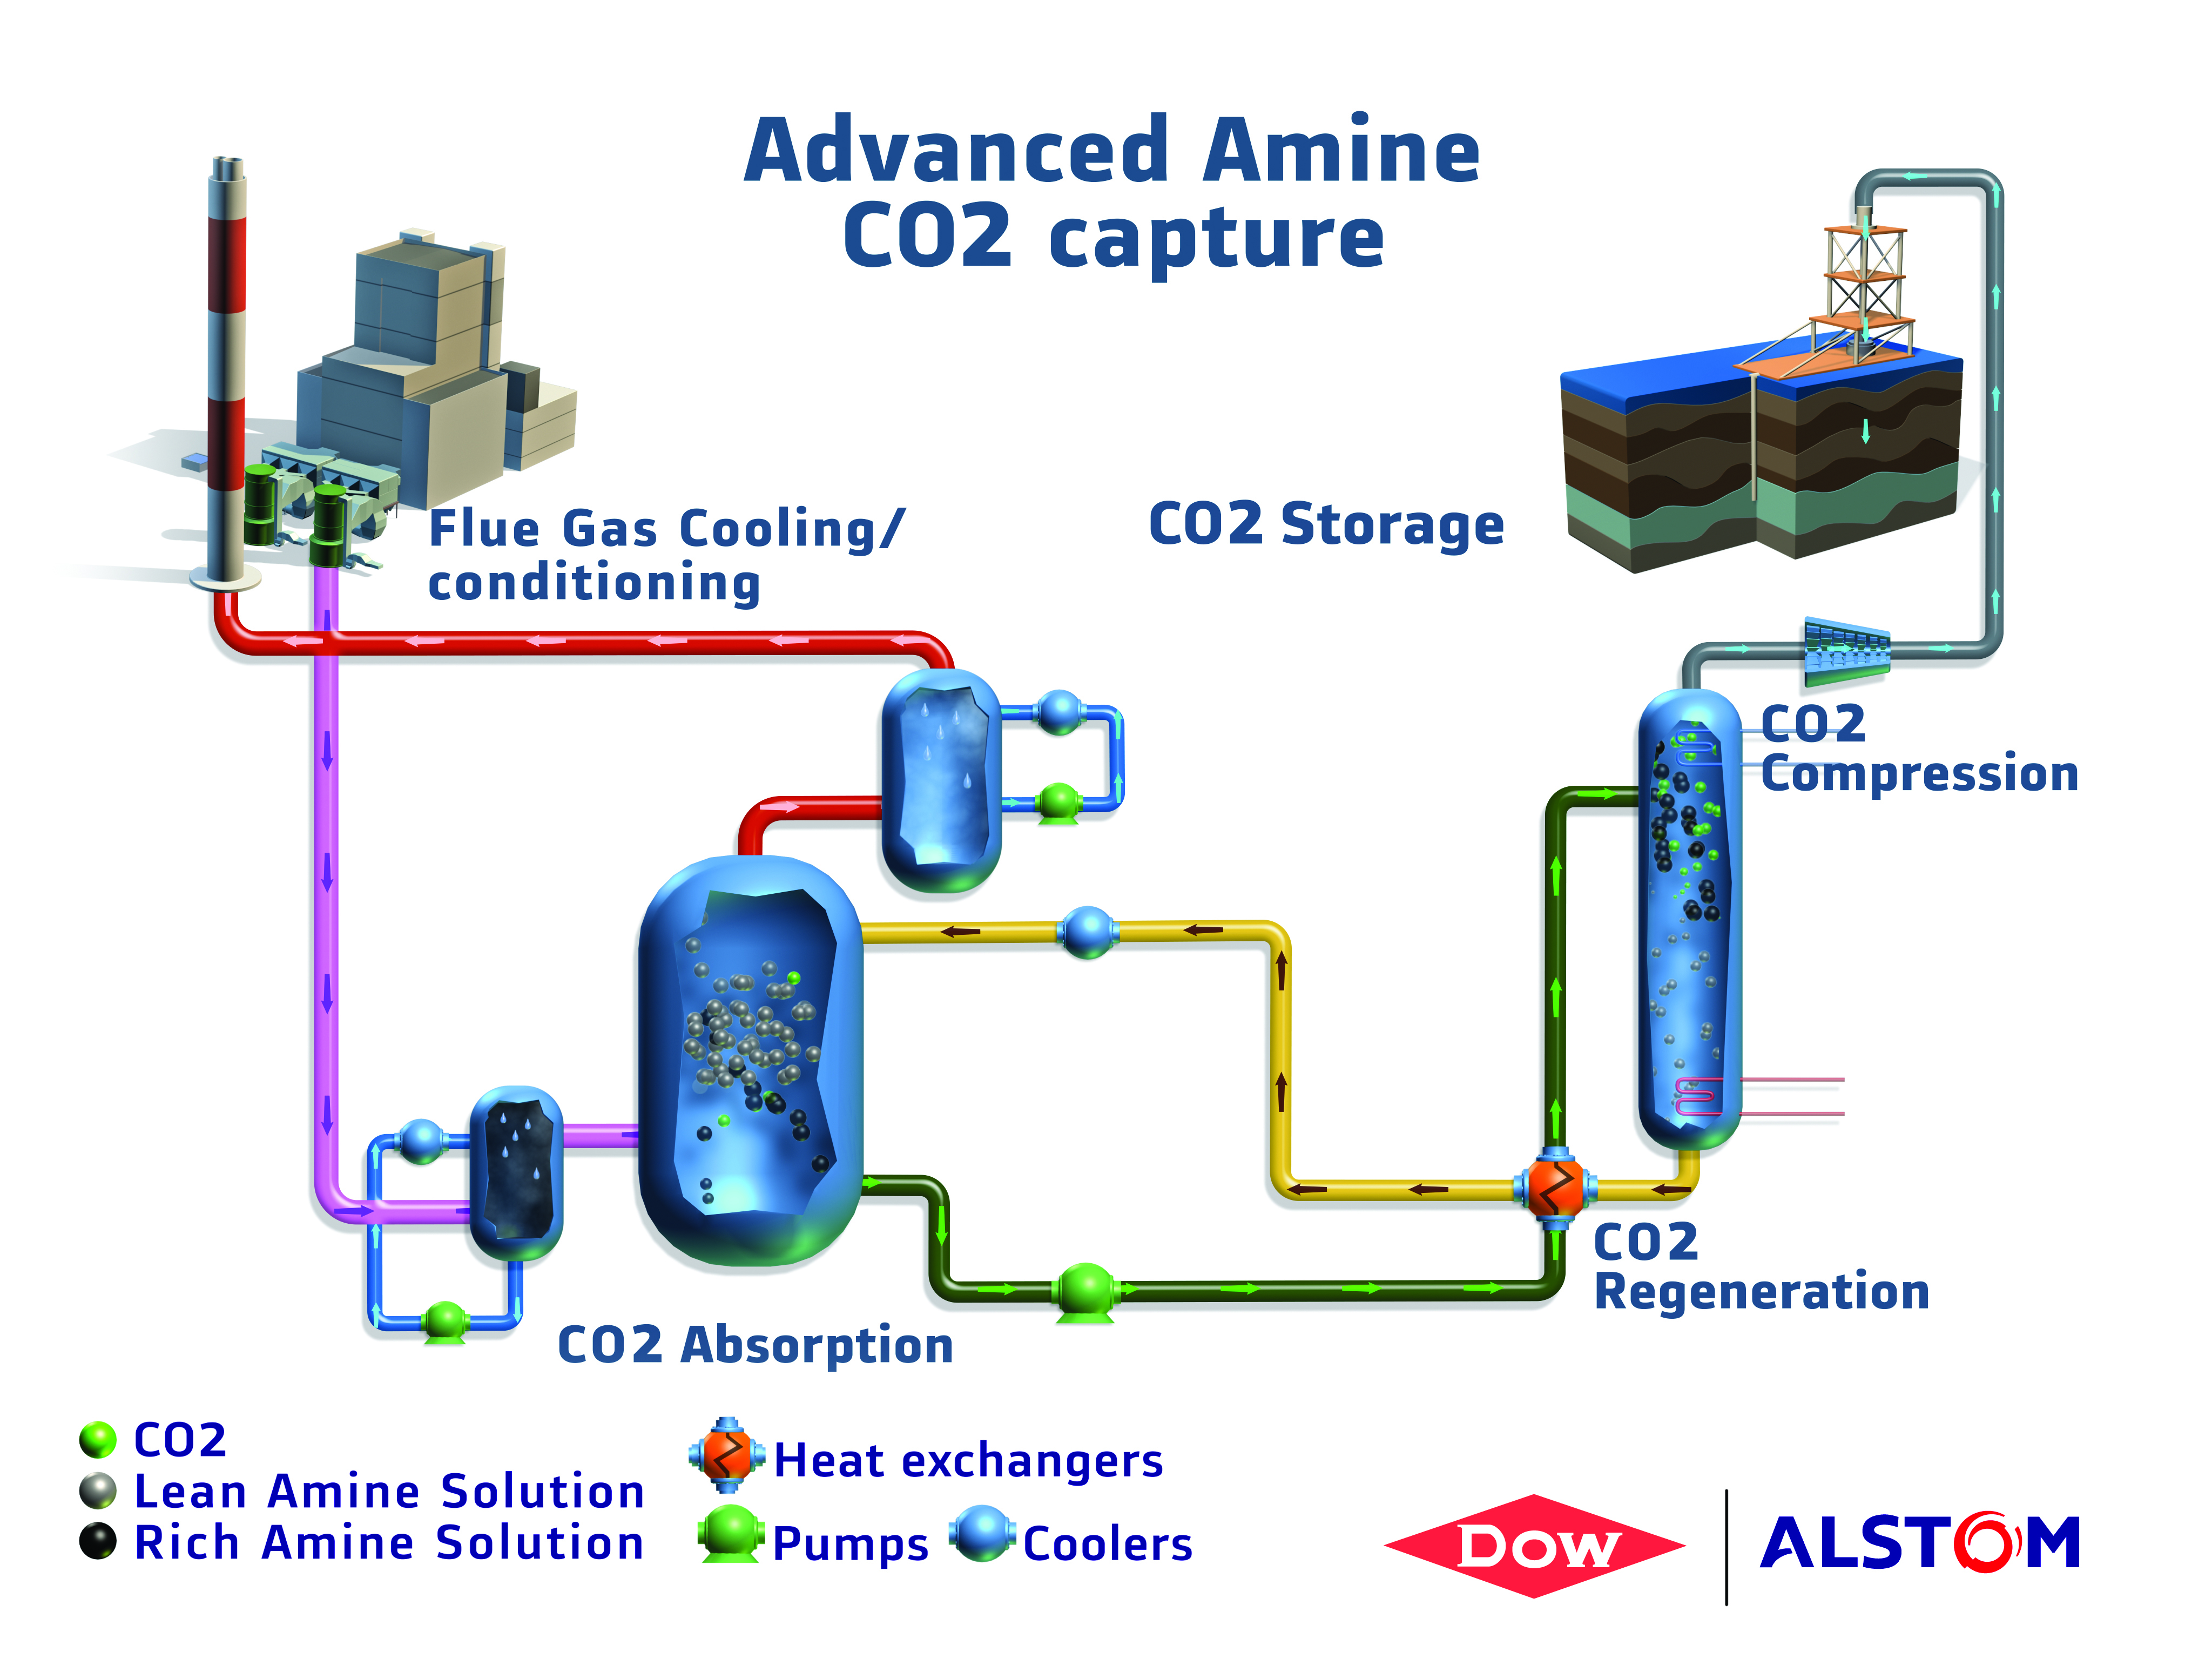 Pipe Dreams Carbon Capture Ready And Retrofitting Gas Fired Power Plant Diagrams Process Advanced Amine